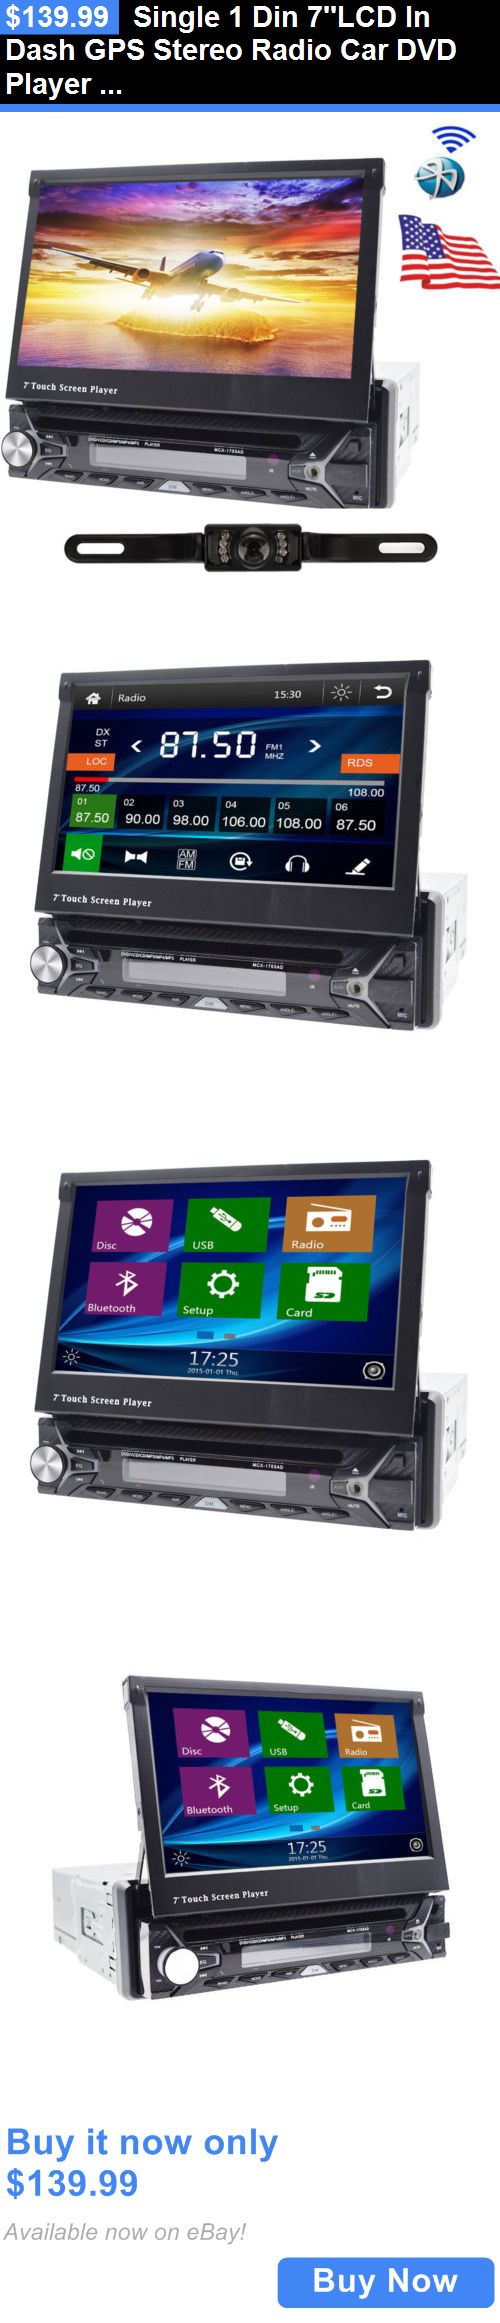 Vehicle Electronics And GPS: Single 1 Din 7Lcd In Dash Gps Stereo Radio Car Dvd Player Touch Screen Bt+Cam BUY IT NOW ONLY: $139.99